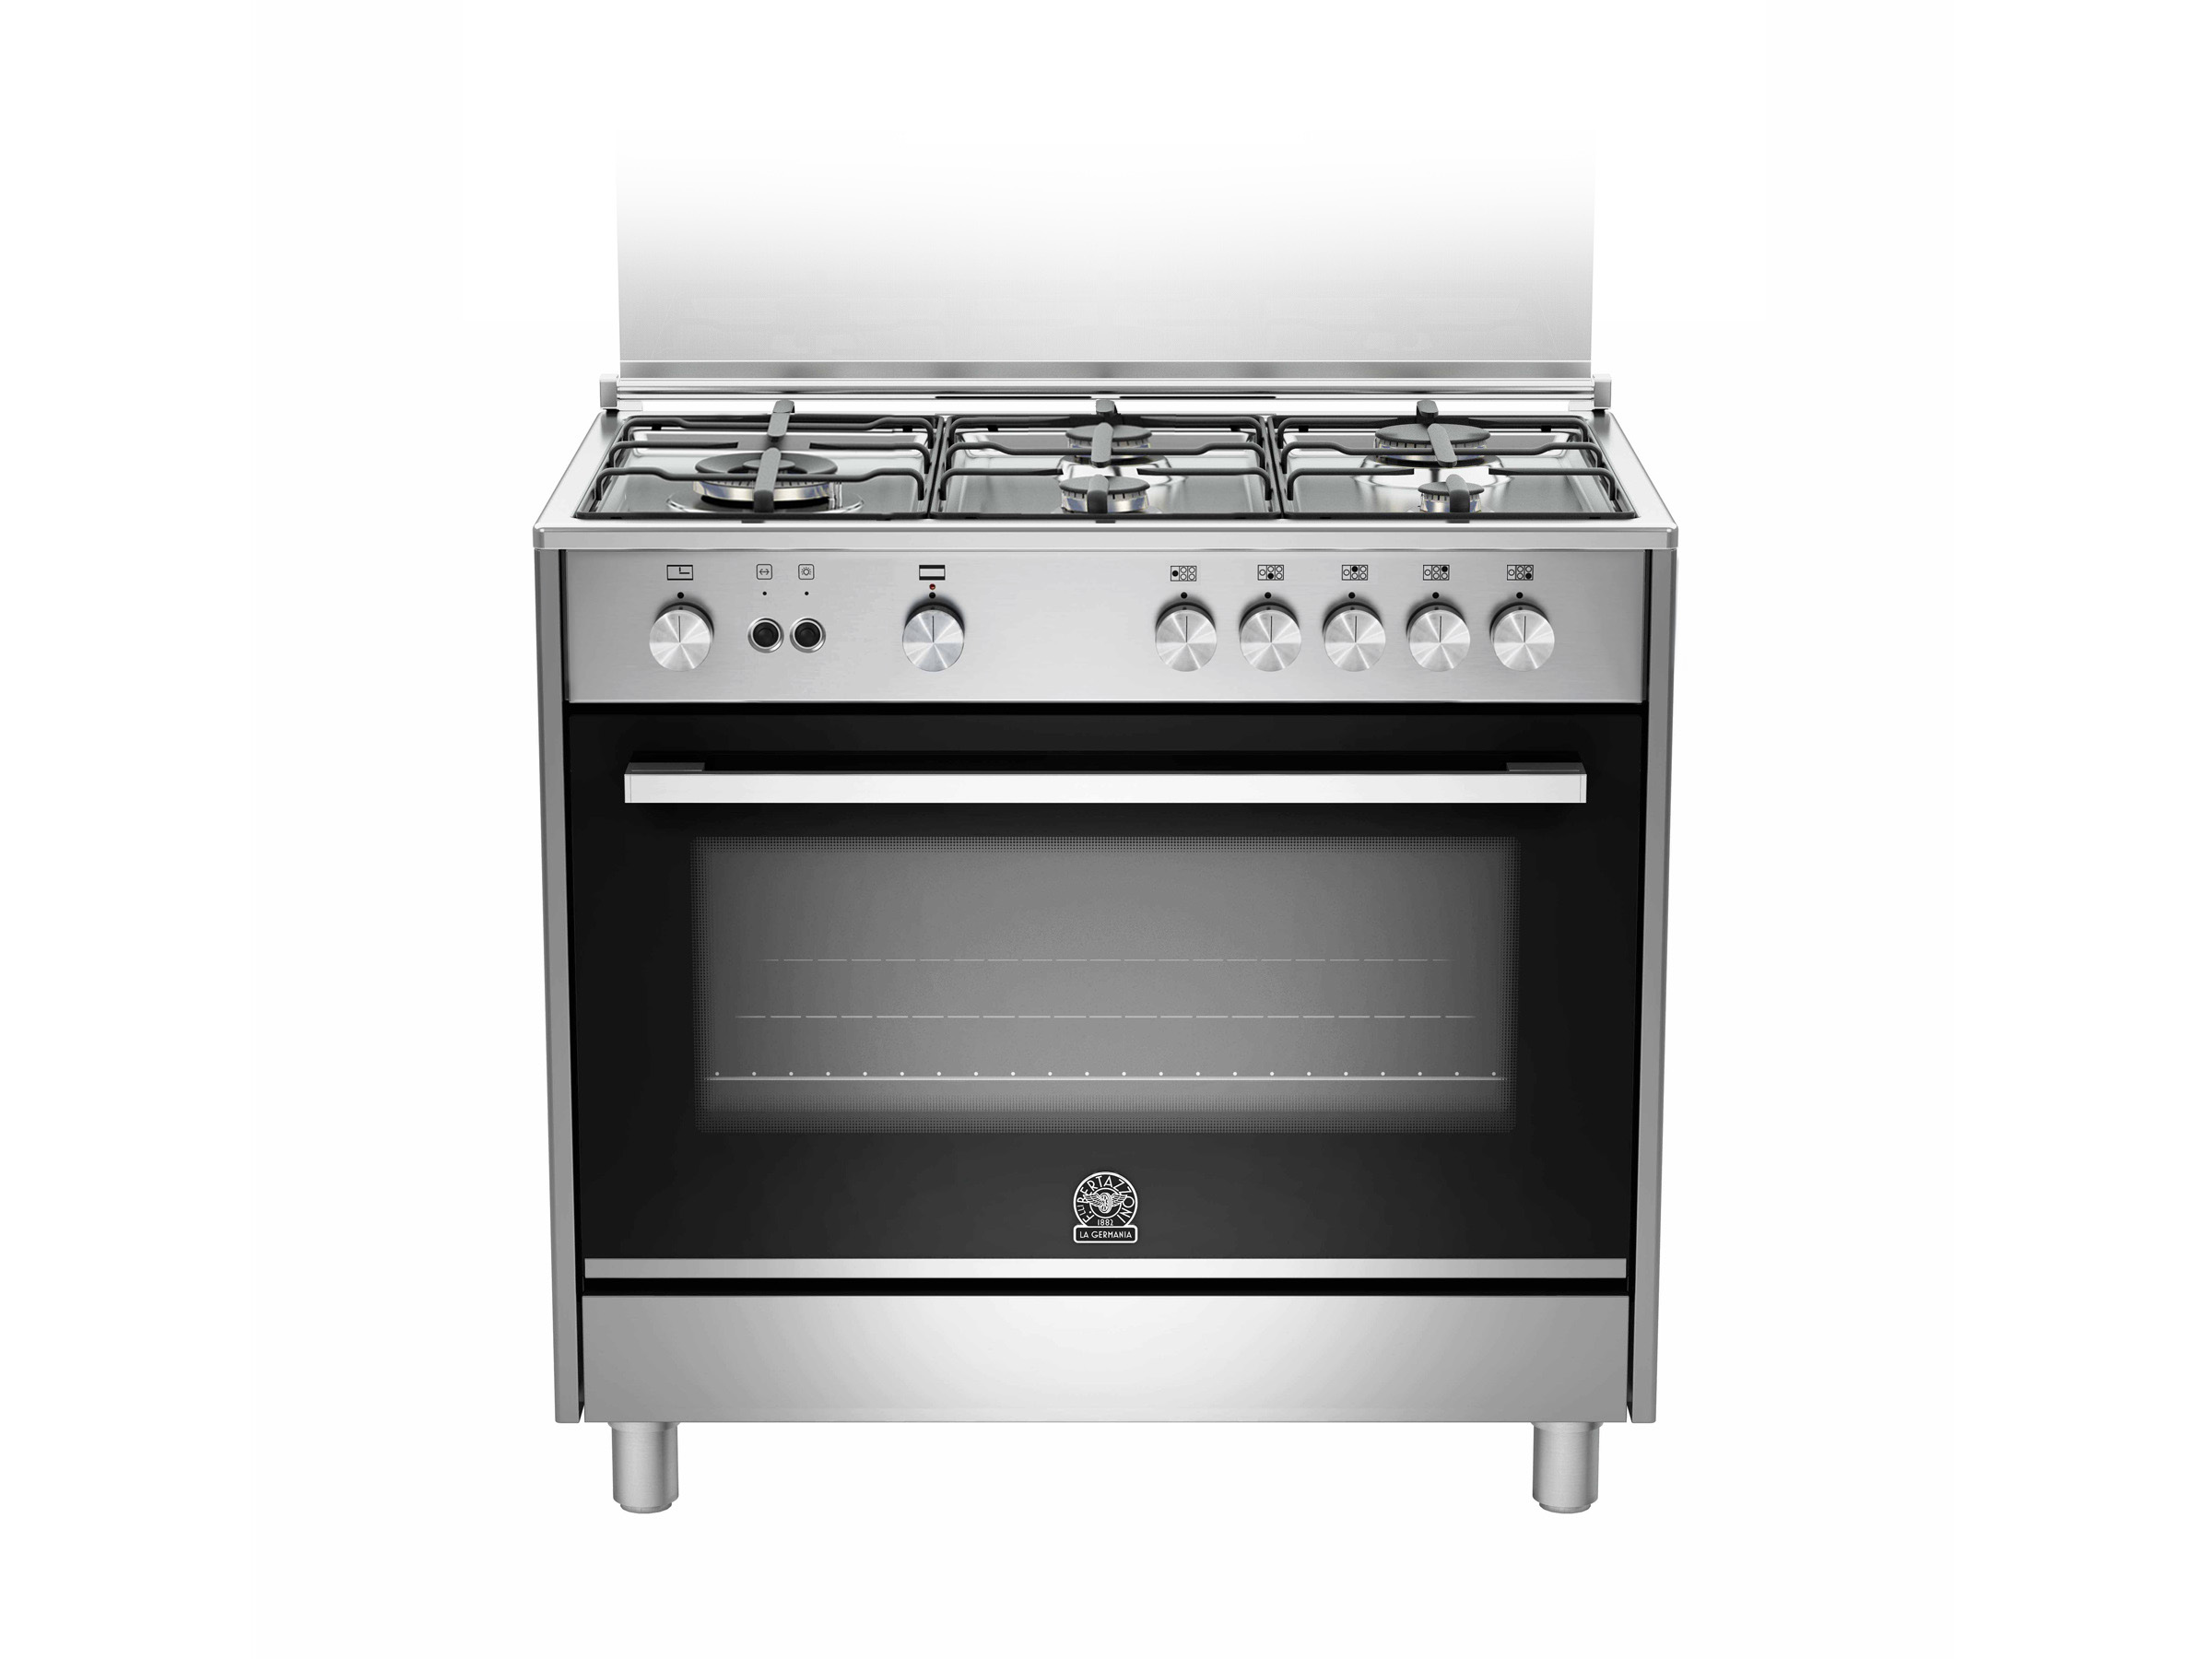 90 5-Burners Gas Oven Electric Grill DX | Bertazzoni La Germania - Stainless